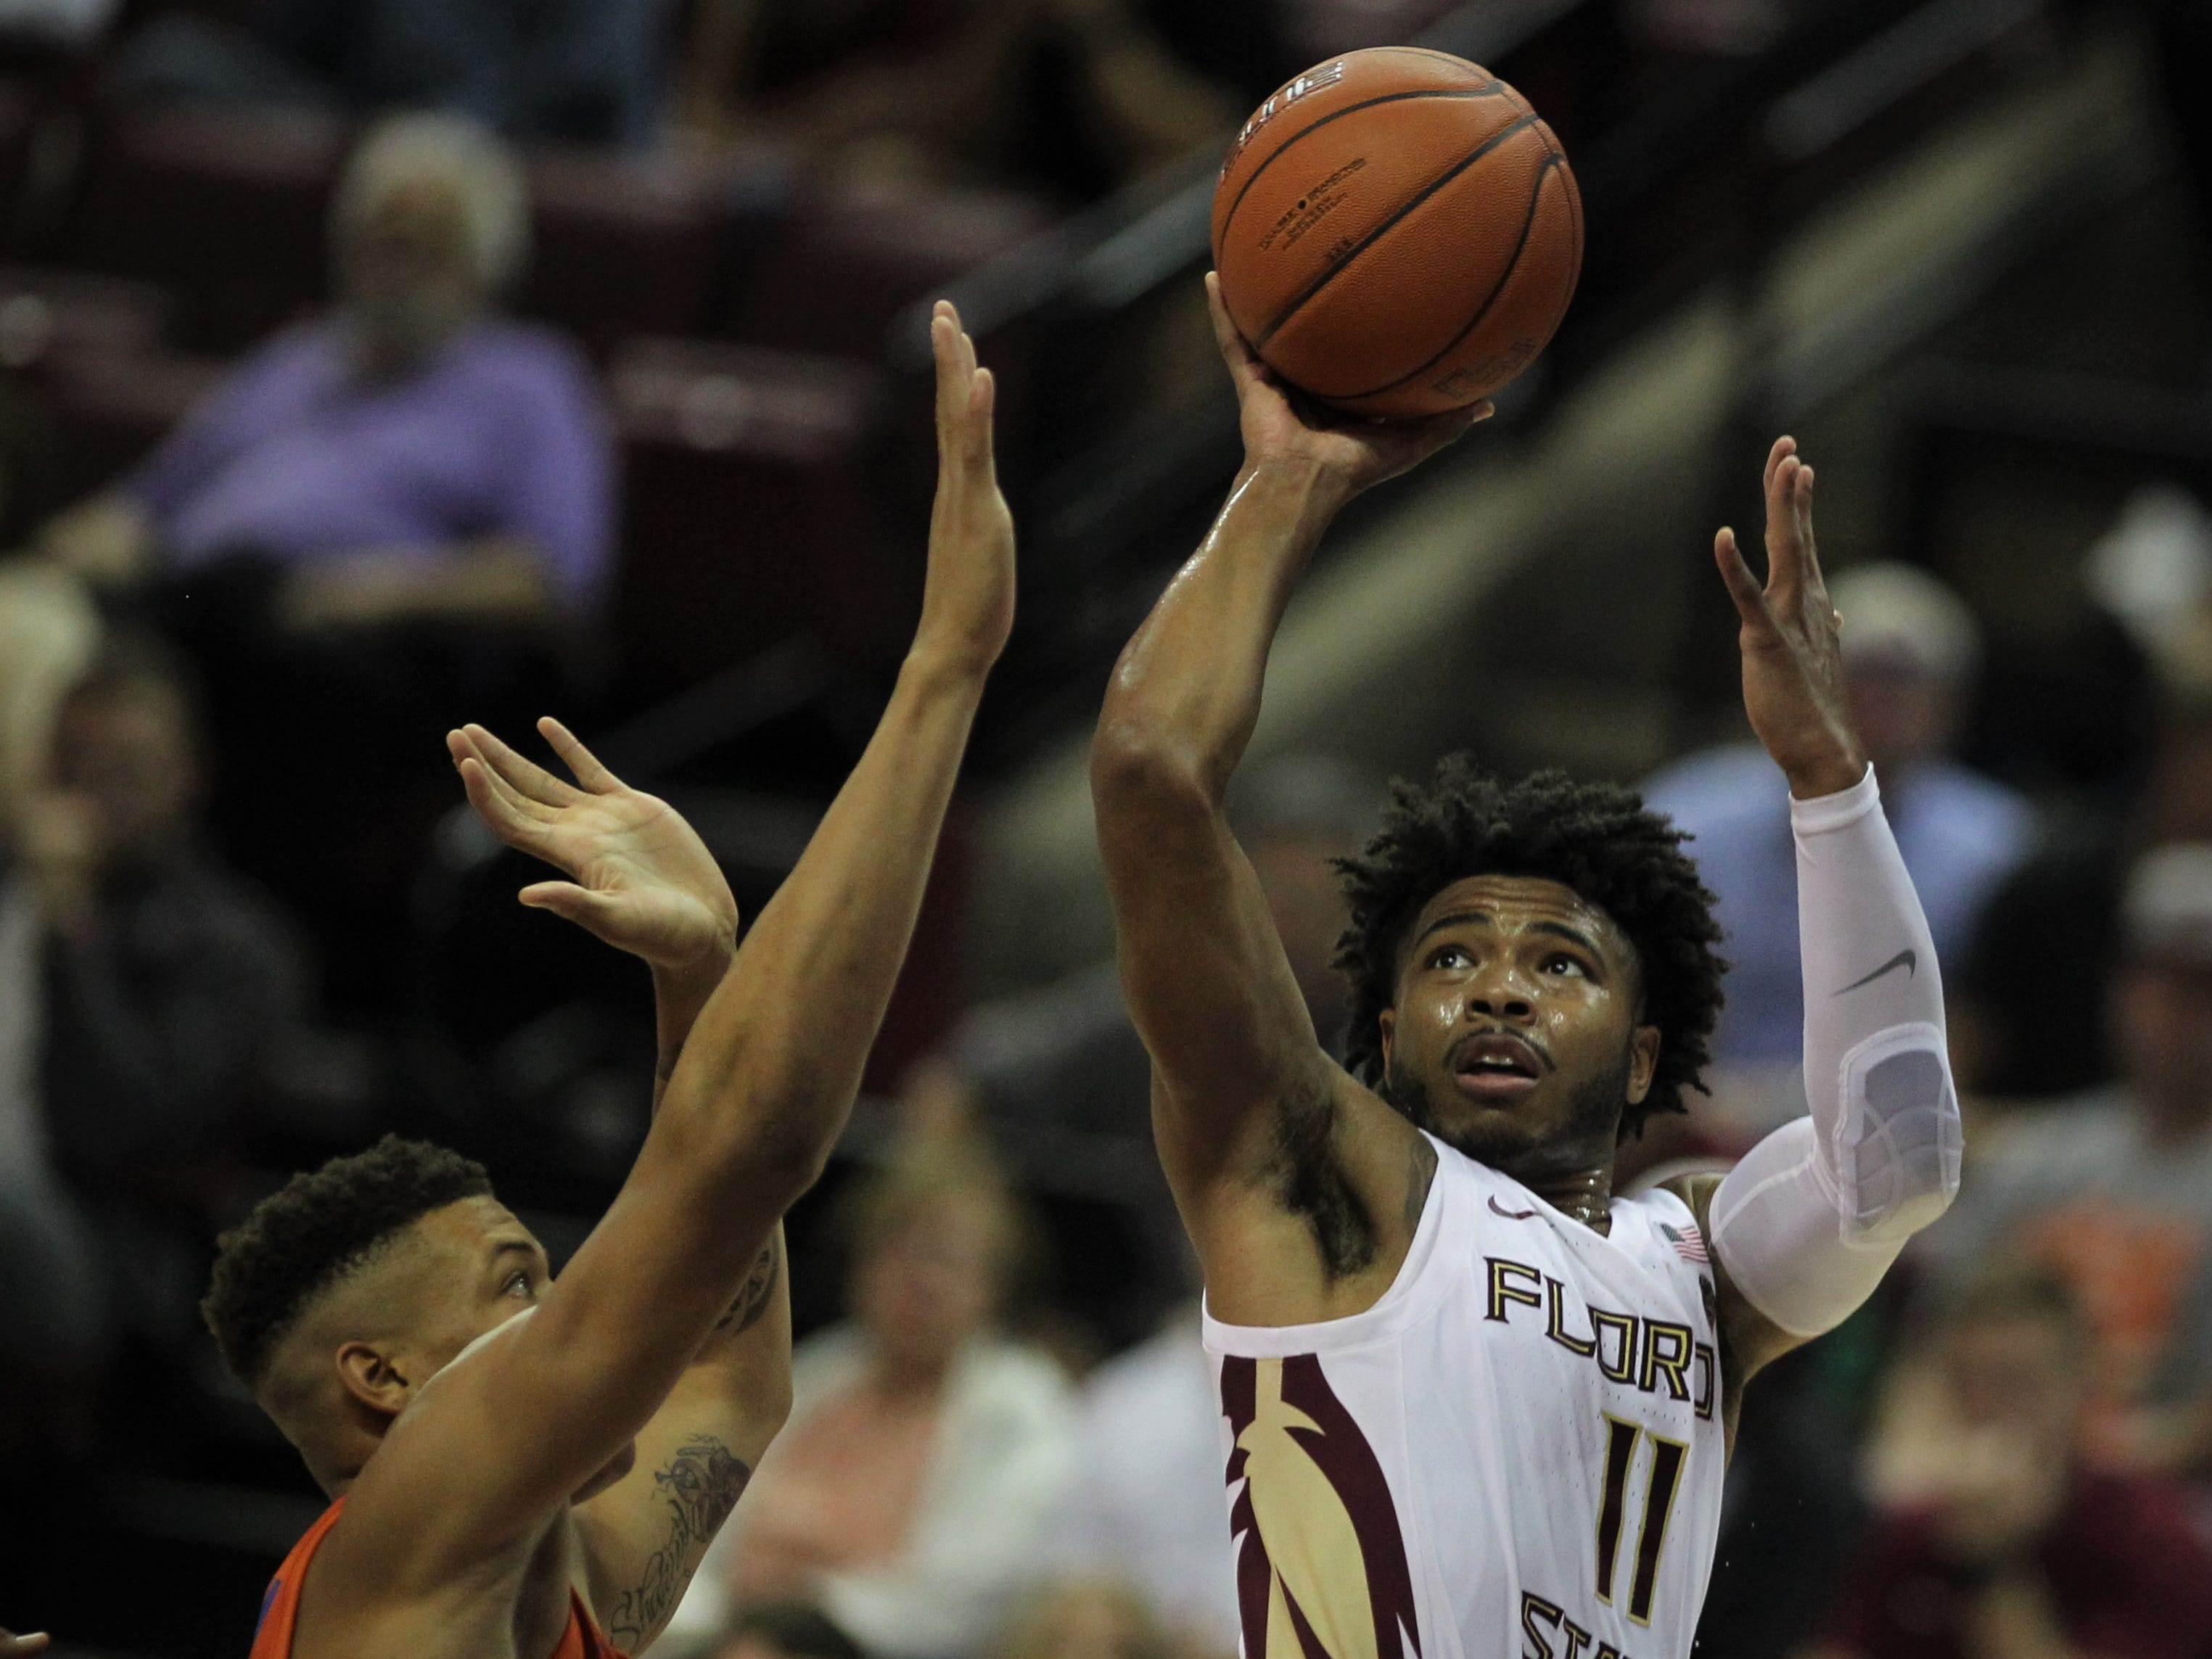 Florida State guard David Nichols shoots over Florida's Keyontae Johnson during the Sunshine Showdown game Tuesday at the Tucker Civic Center.